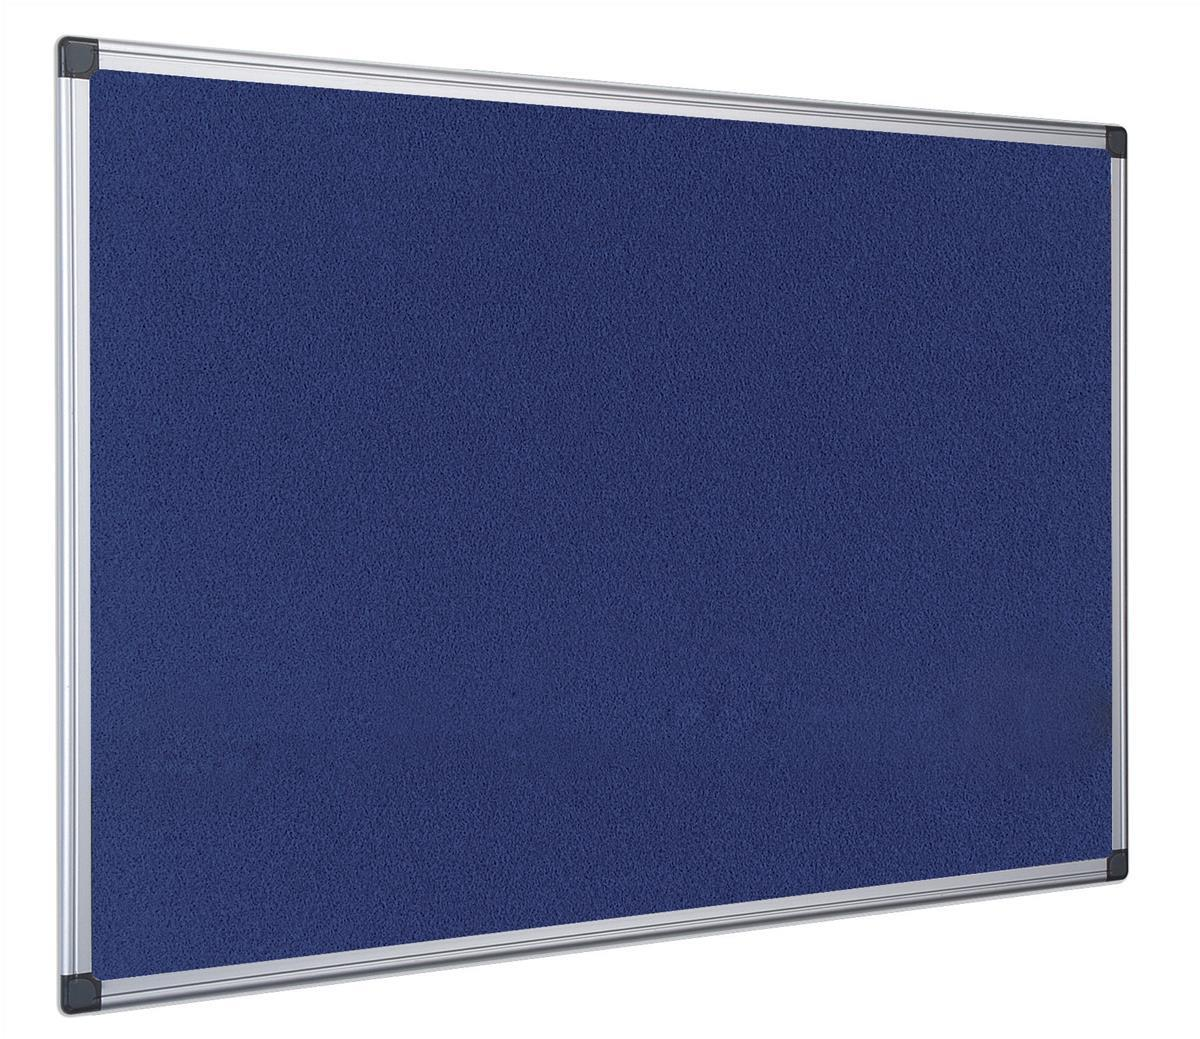 Bi-Office Notice Board Fire Retardant Fabric Alumimium Frame W900xH600mm Blue Ref SA0301170